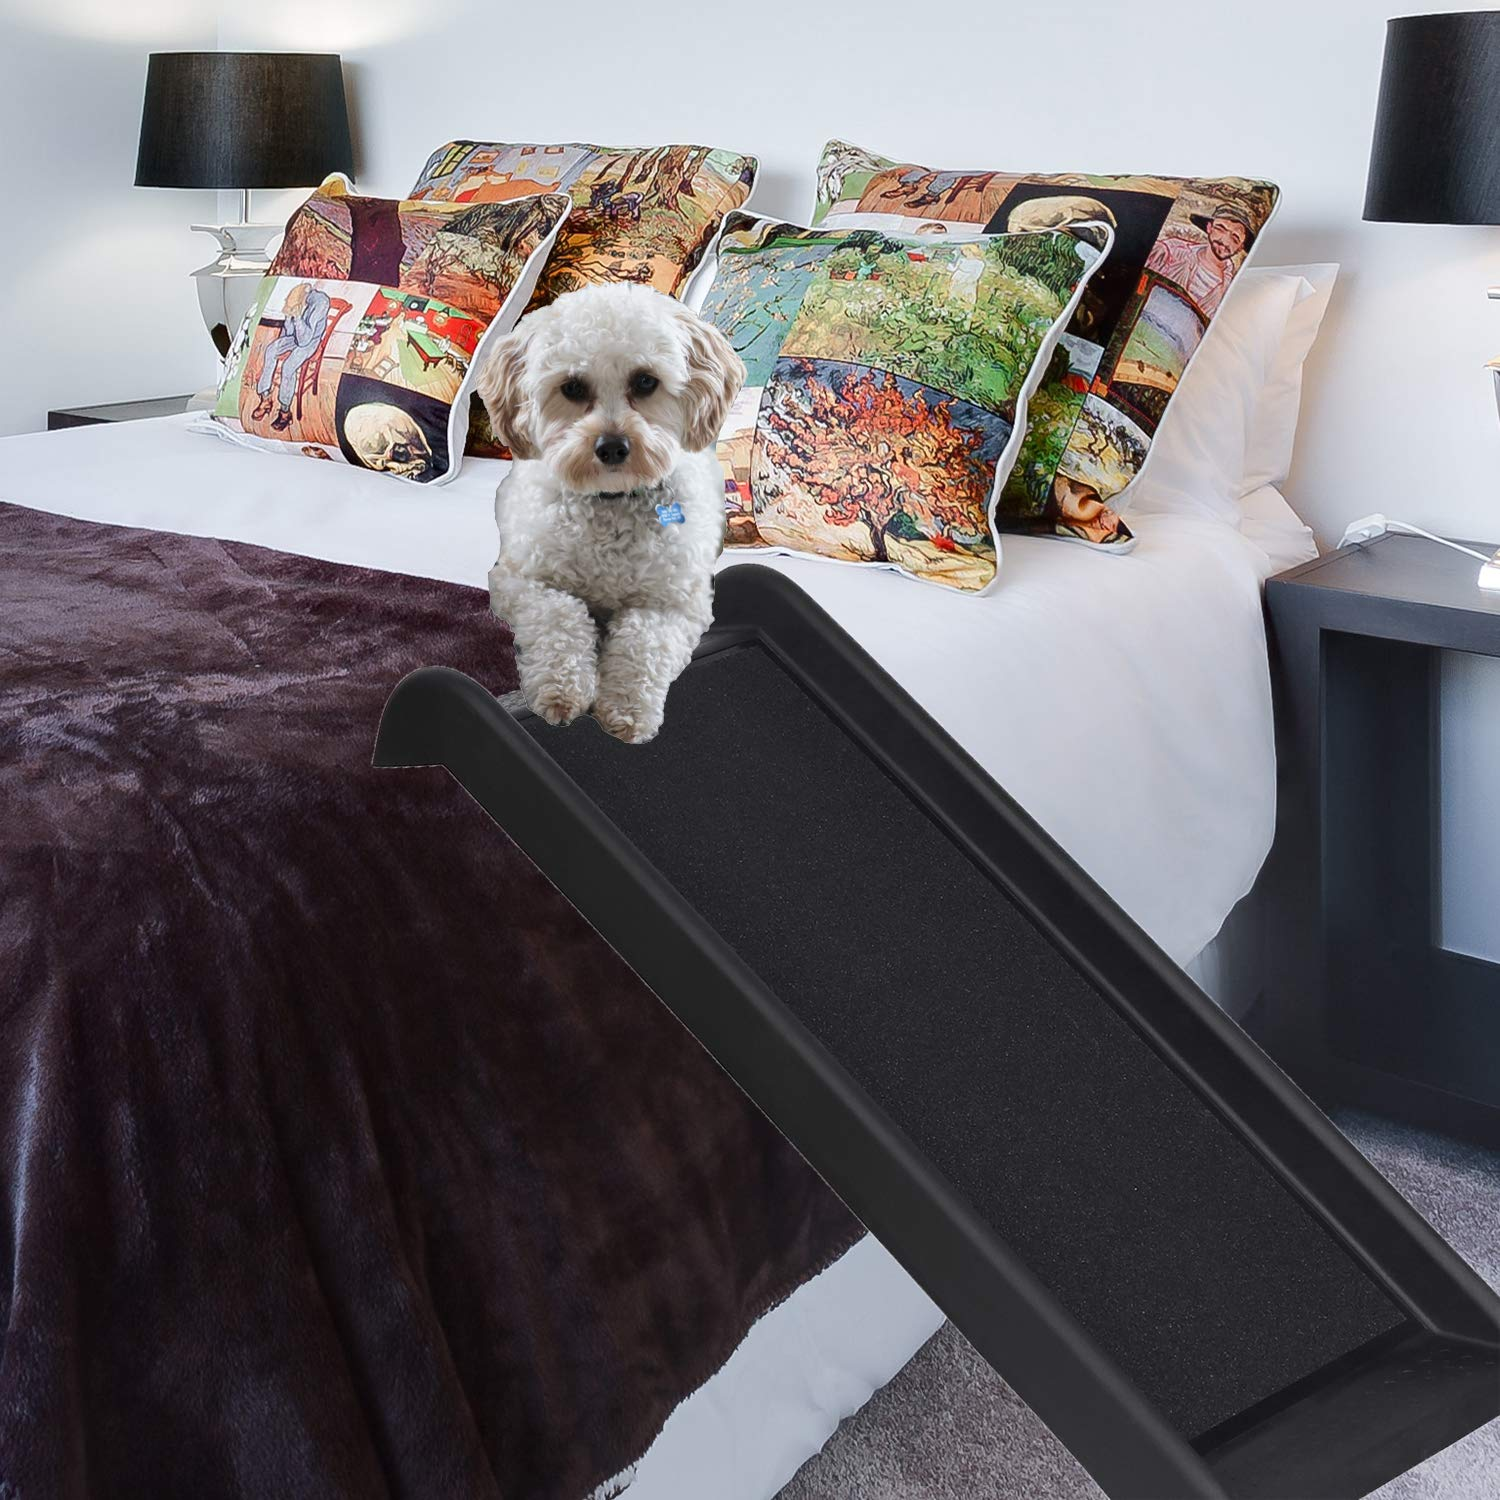 ZLin Safety Half Pet Ramp Portable Small Dog Ramp Support Up to 150lbs, 40 in, Great for Sofa, Bed, Step, and Chair, Not for SUV, CAR by ZLin